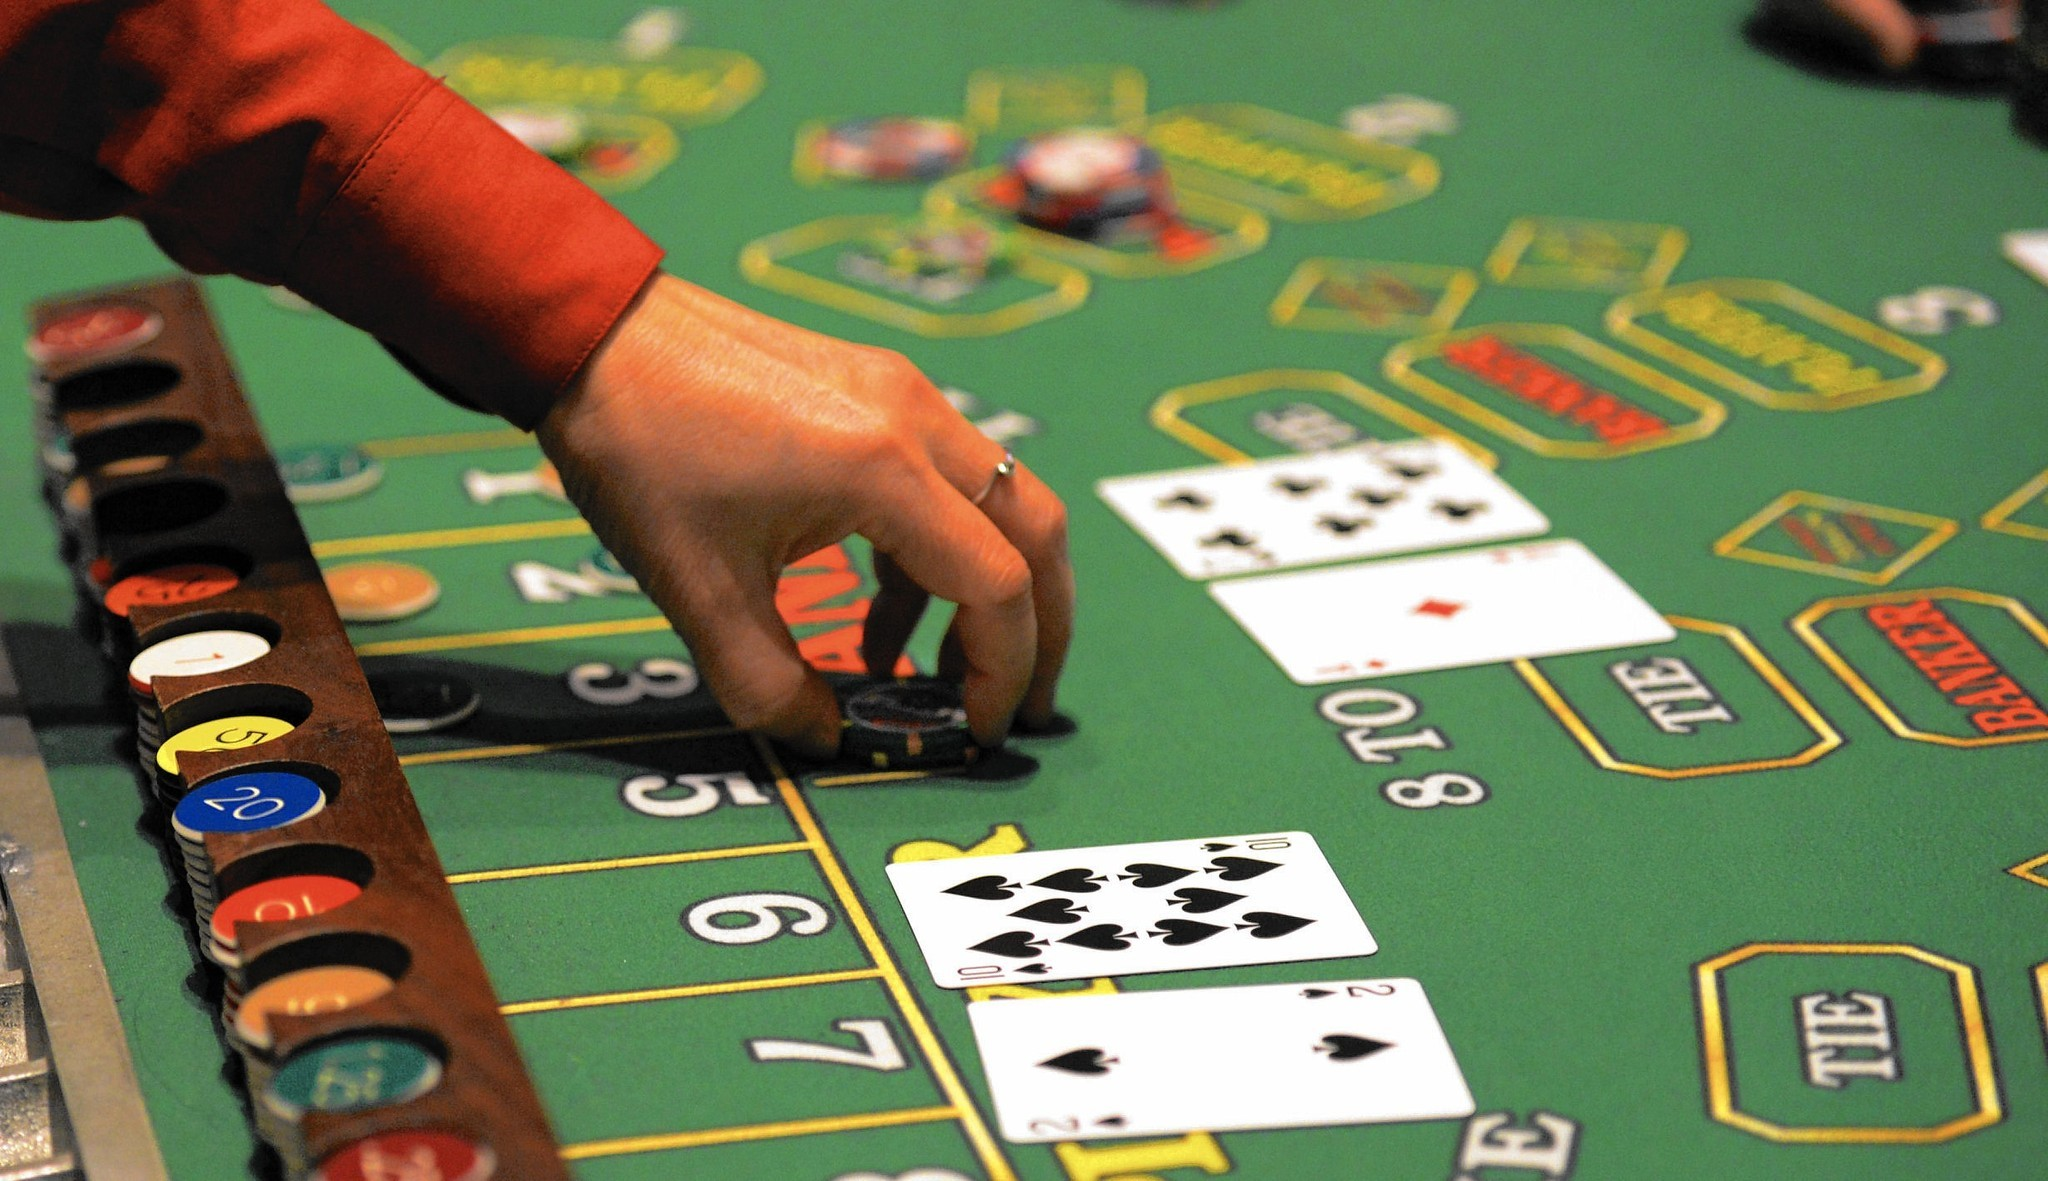 Blackjack The game with the best odds